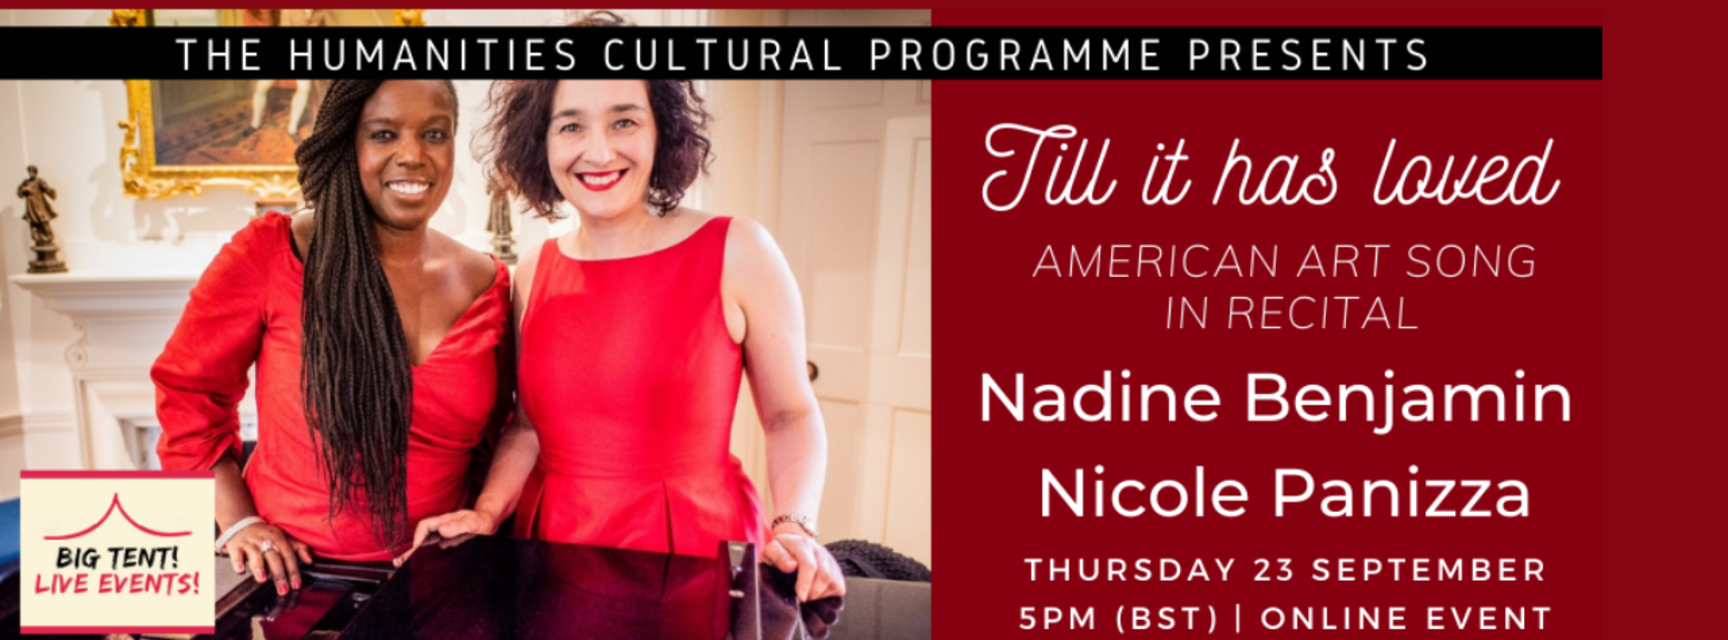 Photo of two smiling women wearing red. Text reads 'Till it has loved: American Art song in recital. Nadine Benjamin and Nicole Panizza. Thursday 23 September, 5pm BST, online event.